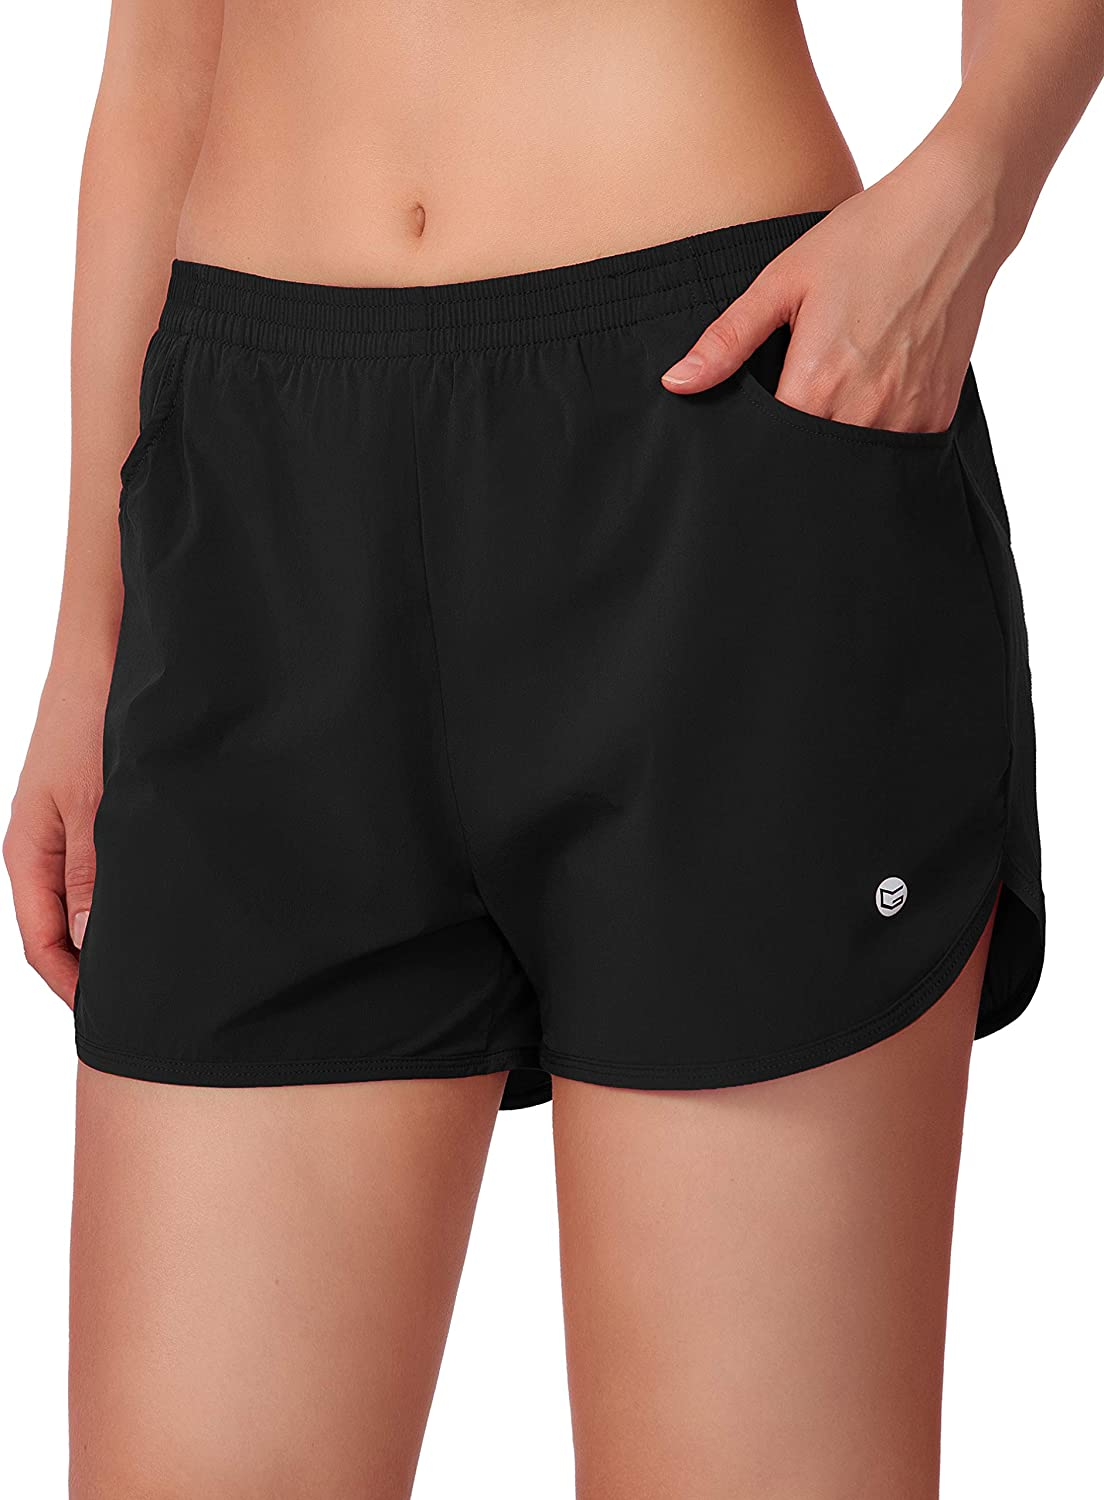 G At the price Gradual Women's Running Shorts Workout Max 57% OFF 3